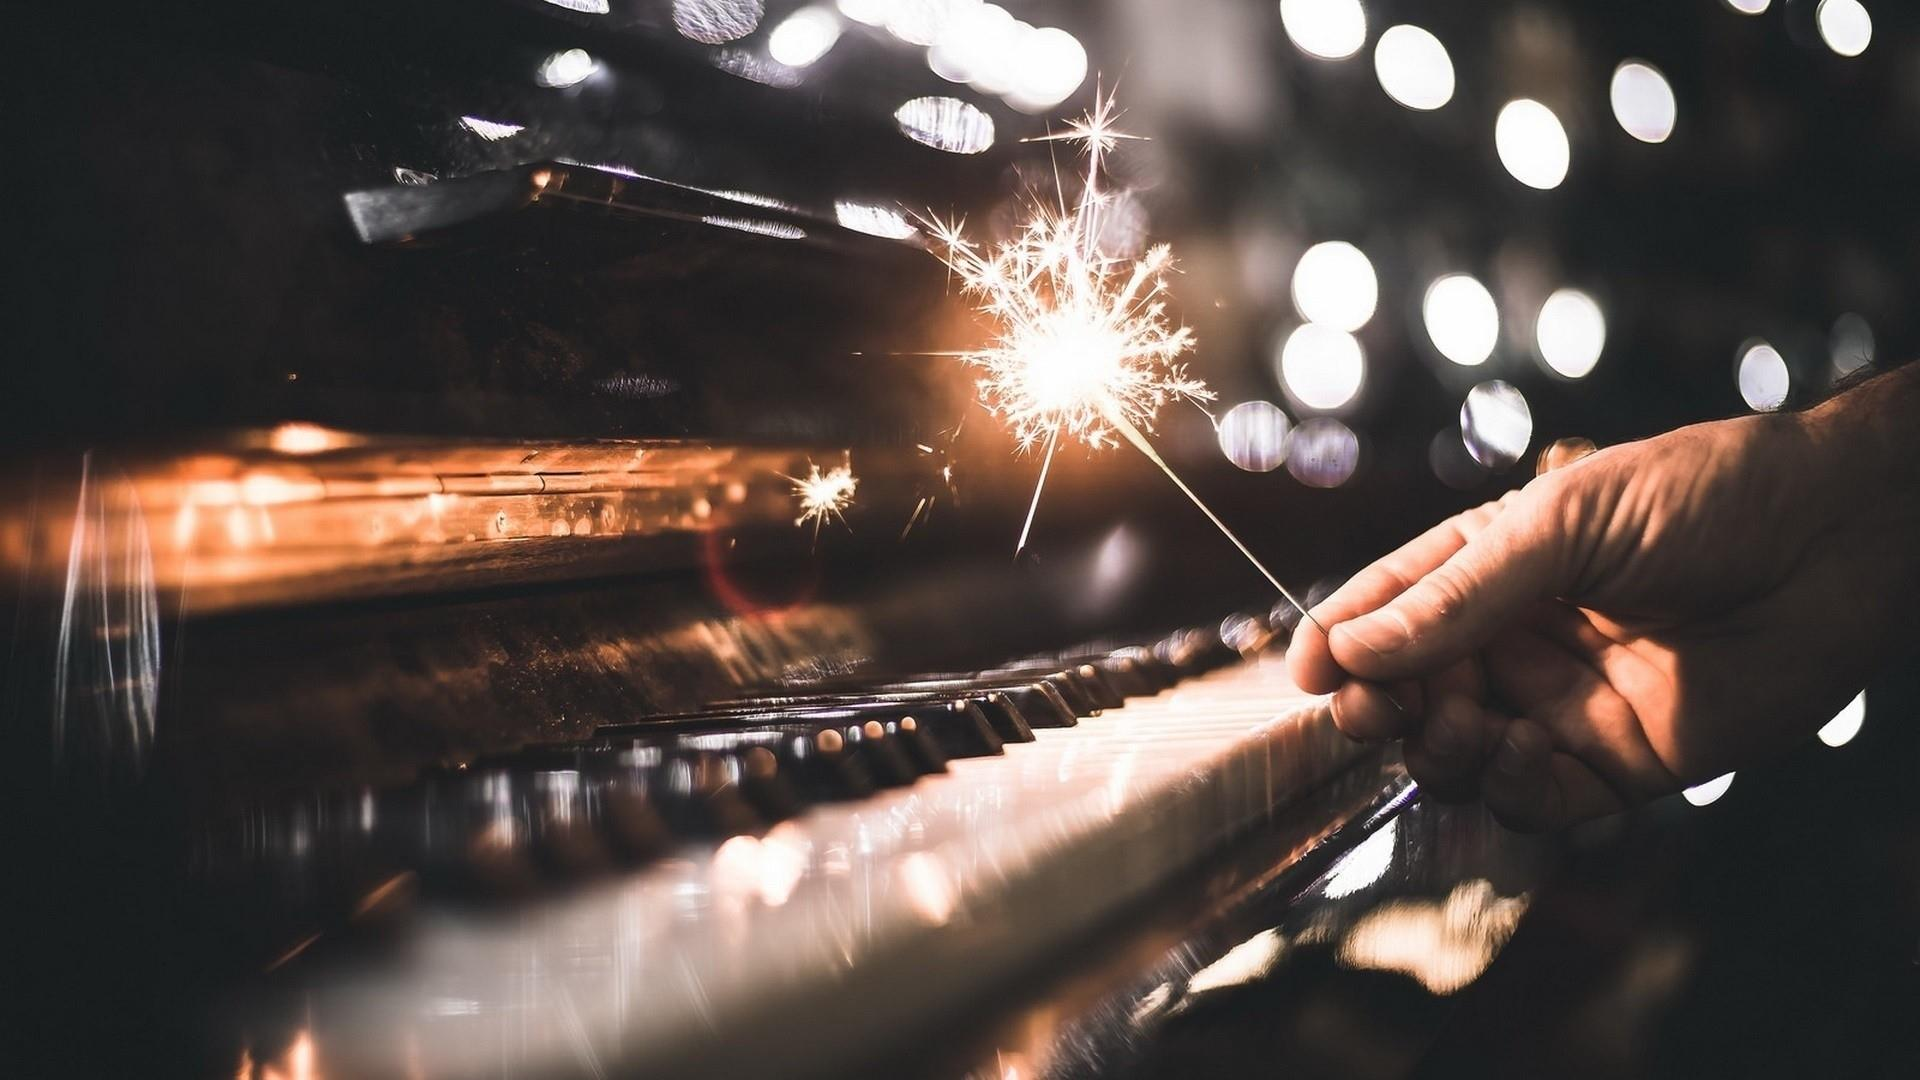 Piano with a sparkle wallpaper